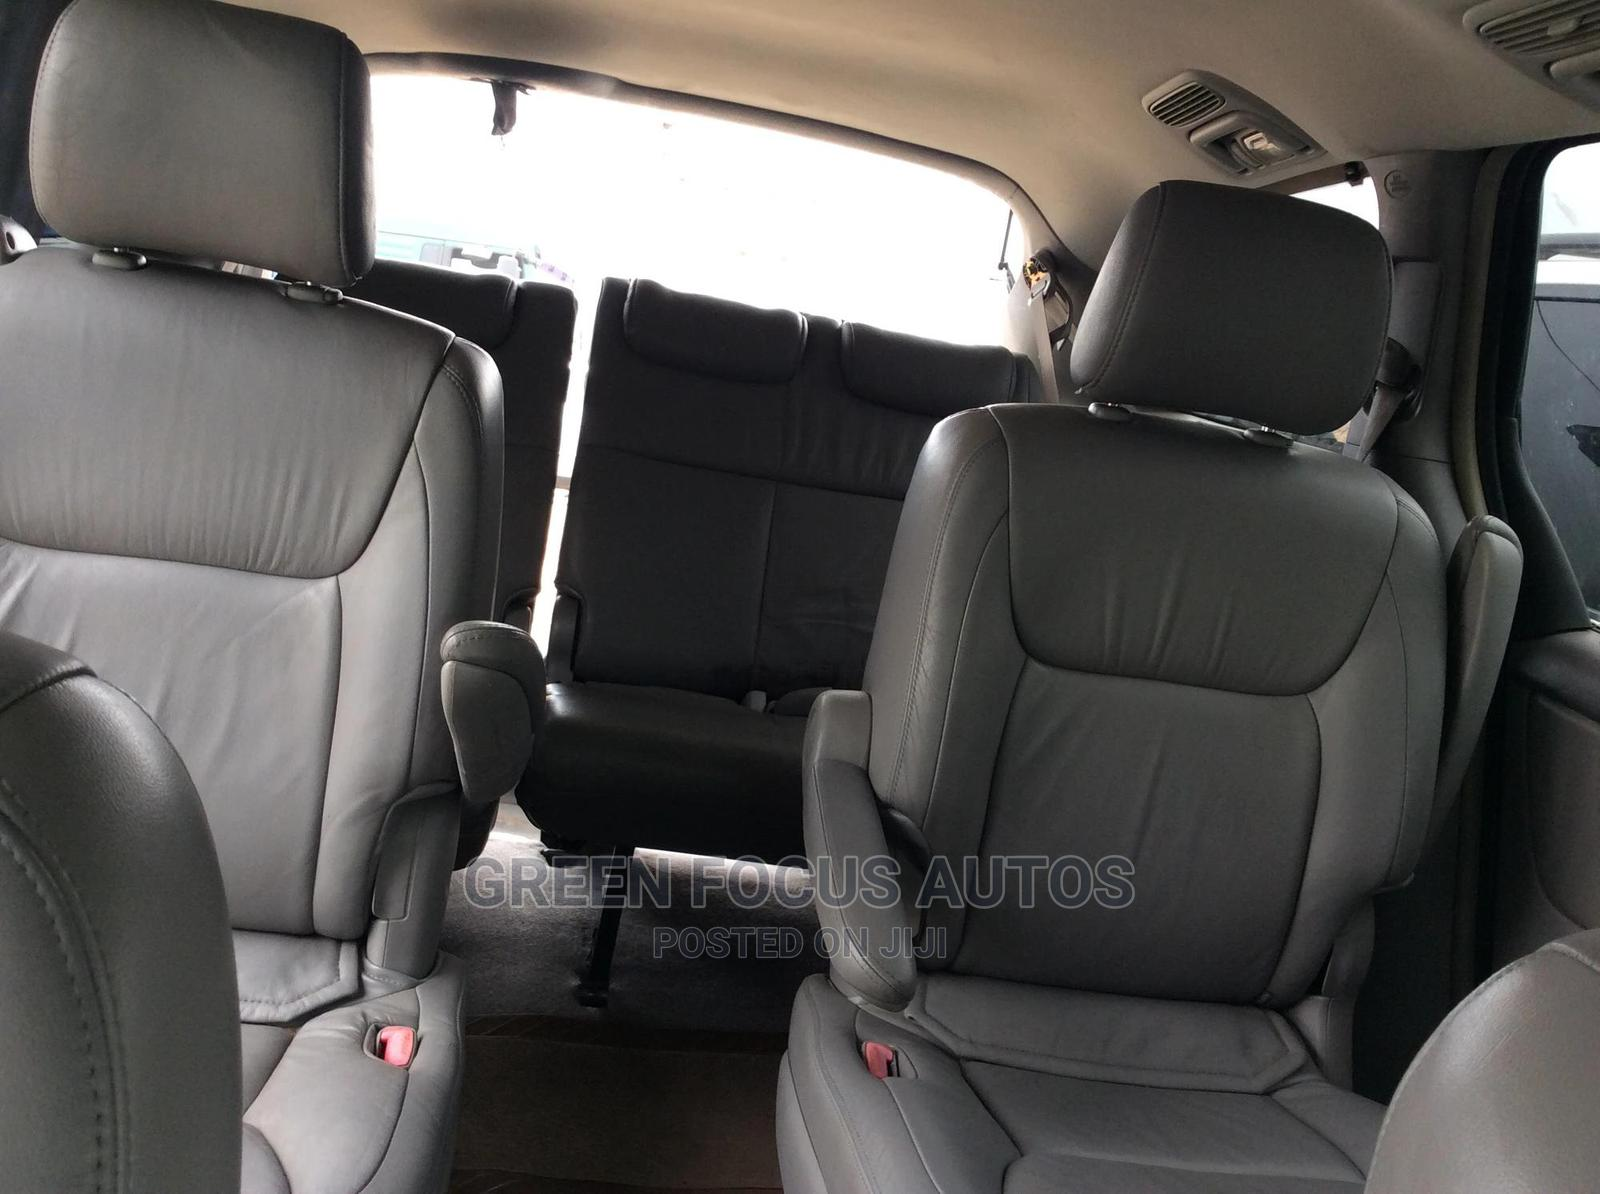 Archive: Toyota Sienna 2004 Silver